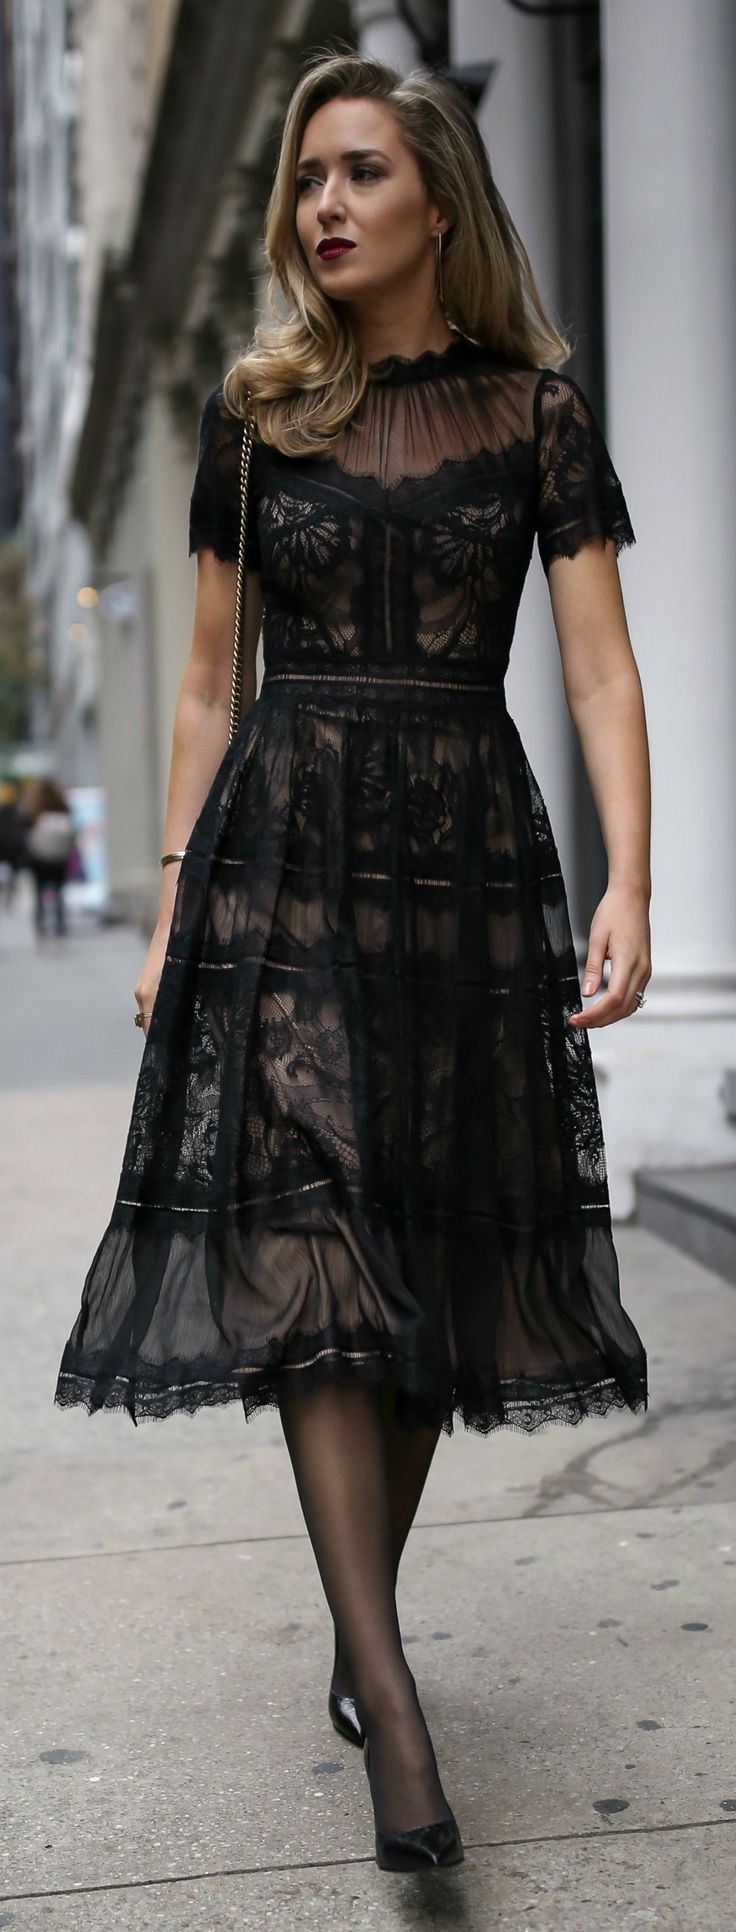 Pin By Jamie Downing On Fashion In Black Cocktail Attire Lace Dress Lace Tea Length Dress [ 1932 x 736 Pixel ]